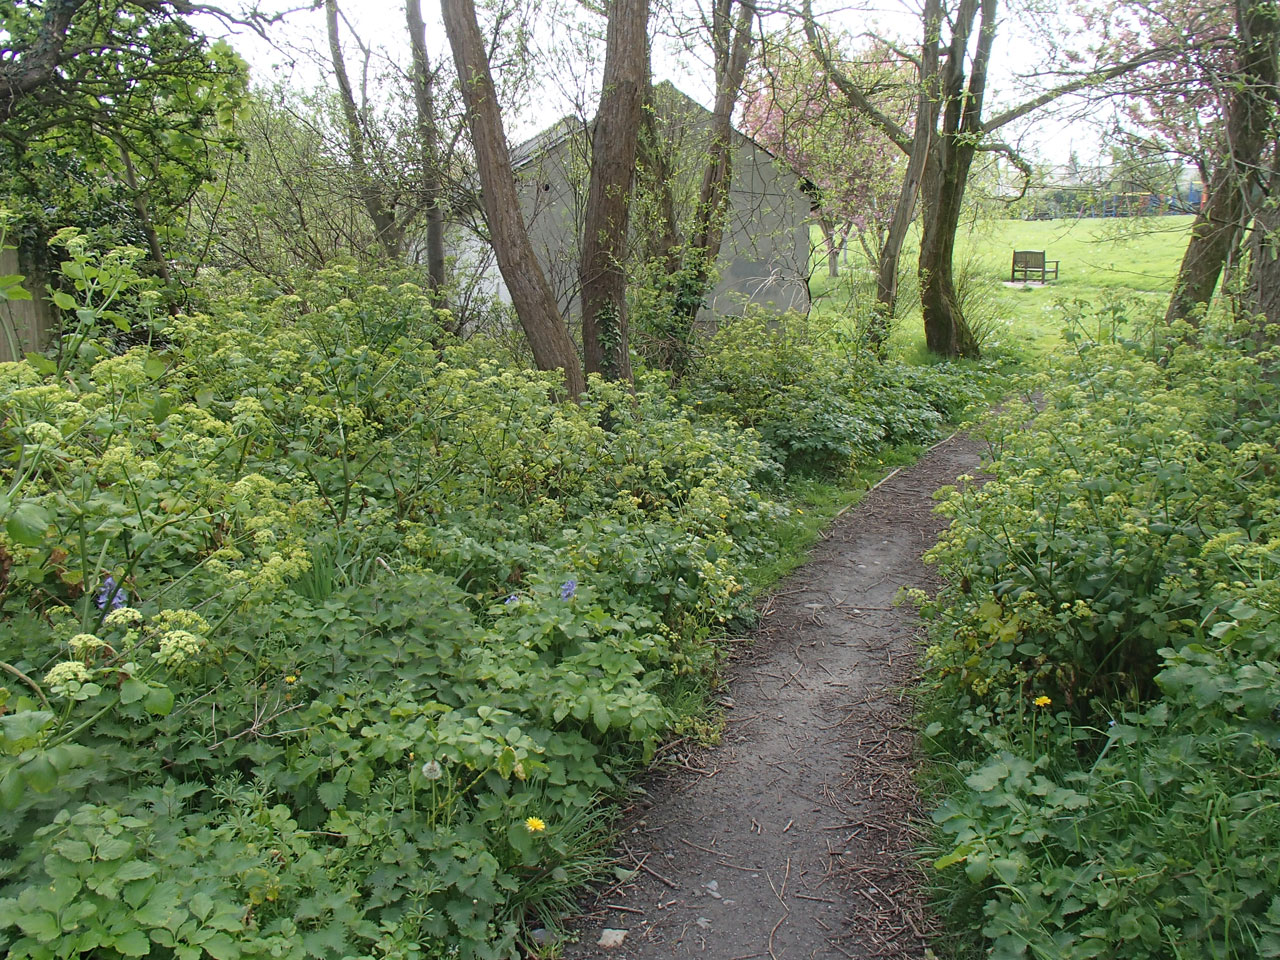 Alexanders edging the path to the park